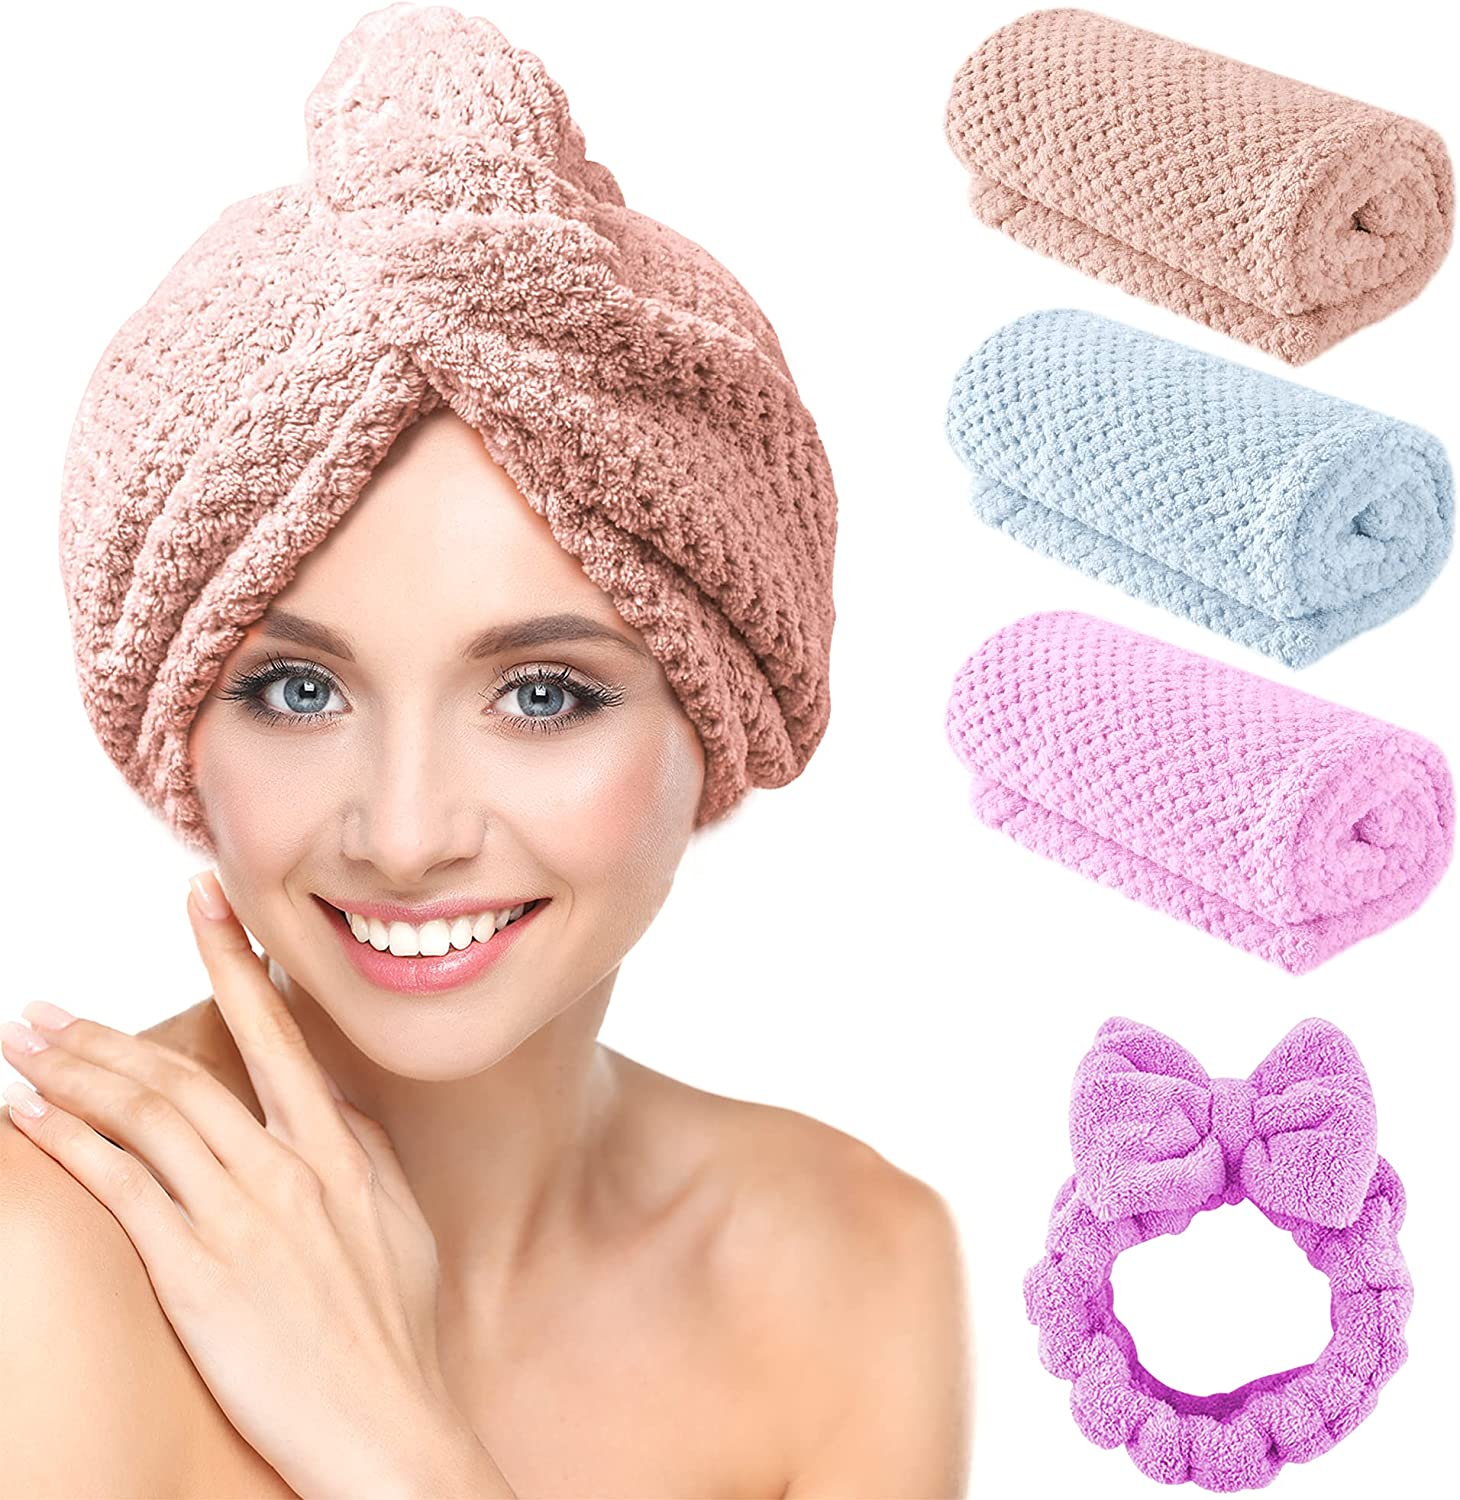 Microfiber Factory outlet Hair Towel Wrap Mail order CHOOBY 3+1 Pack Quick Dry